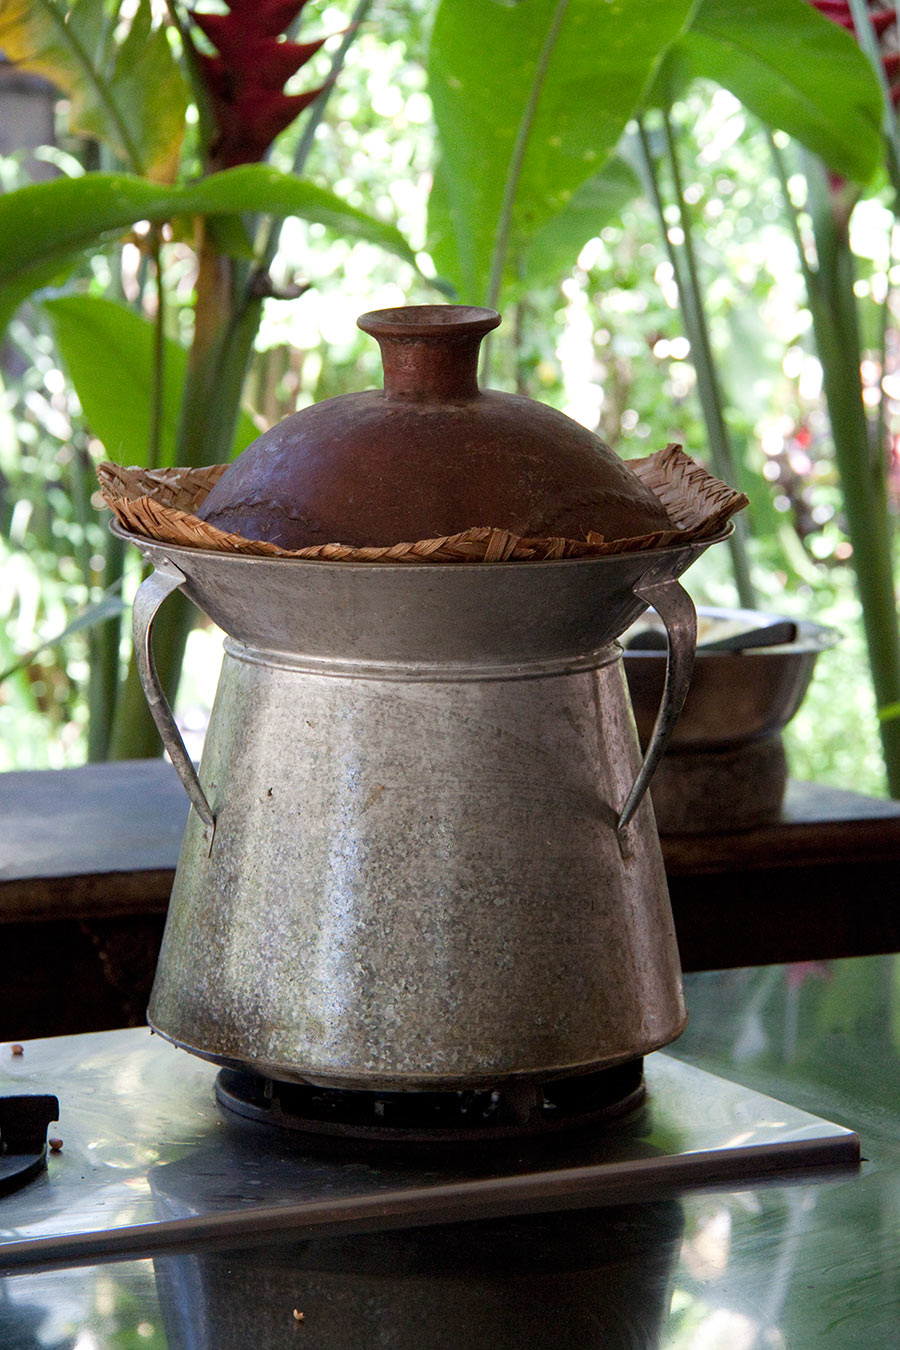 A traditional rice cooker. #Bali #rice